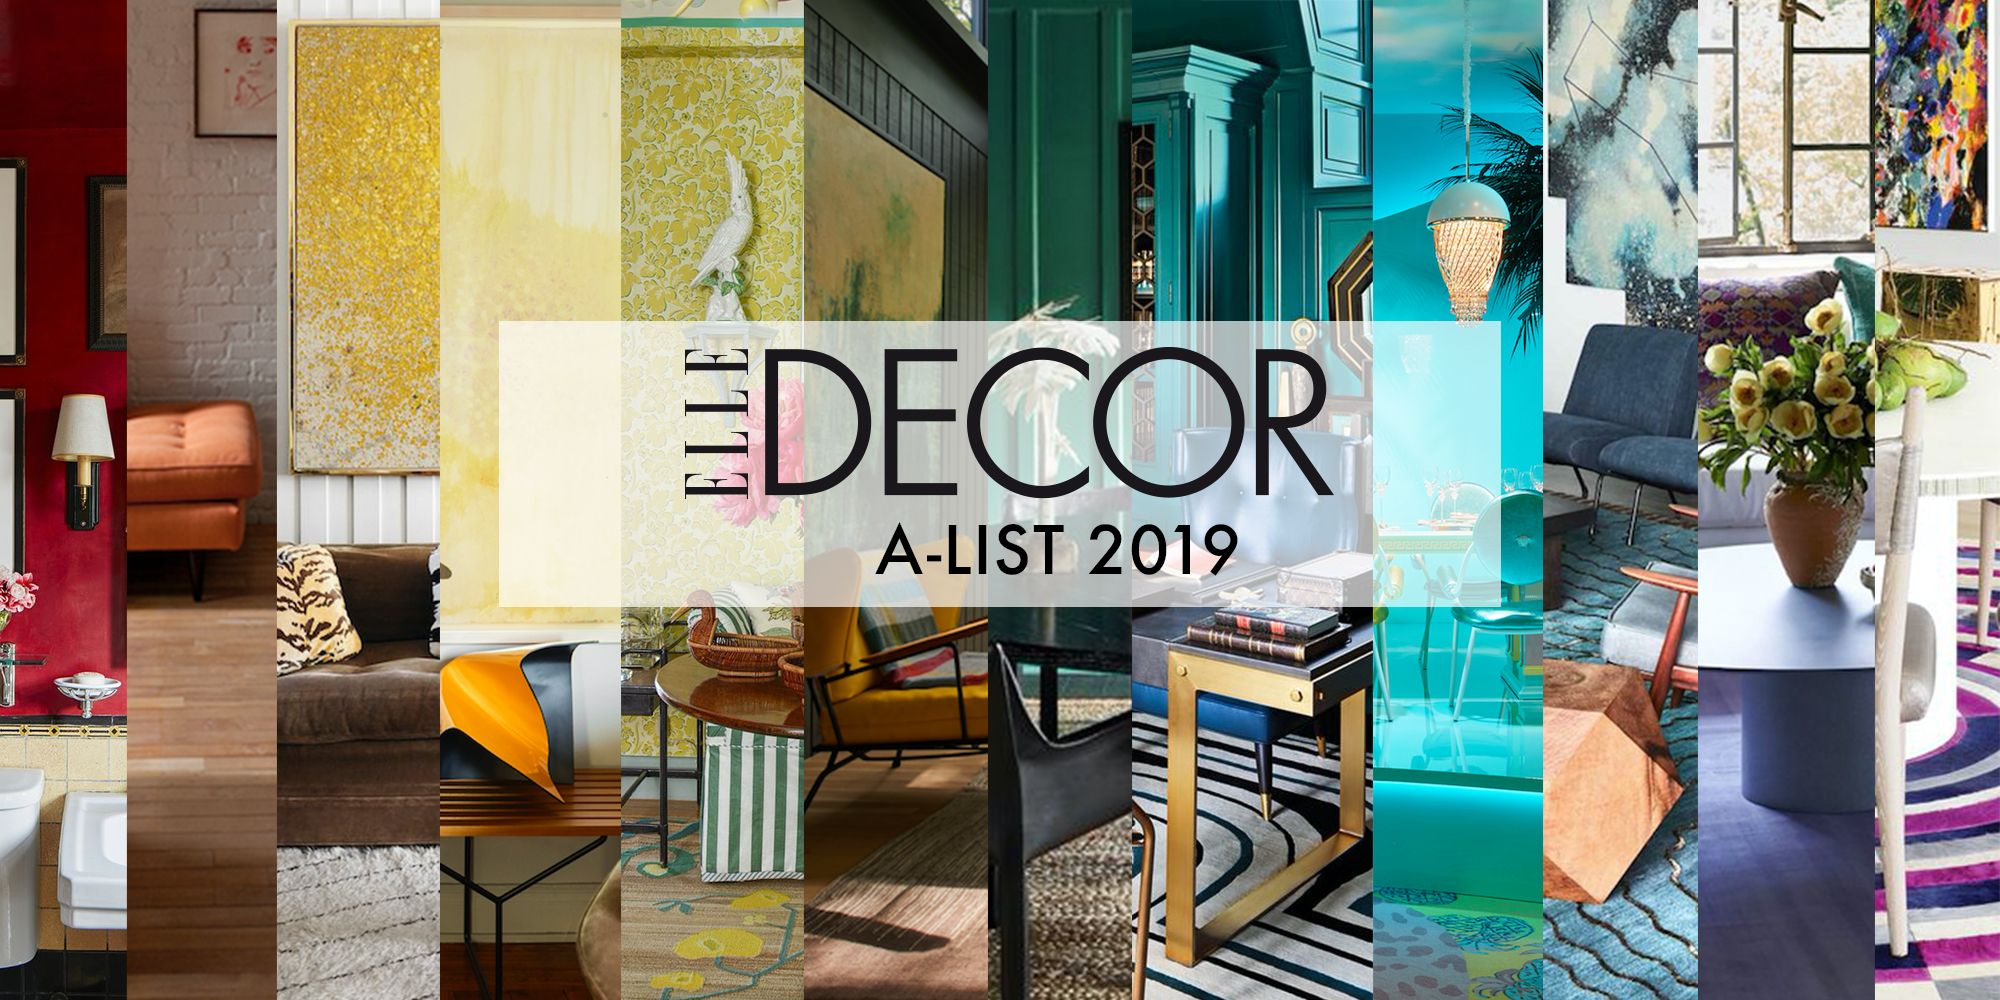 can an all glass fice building really be considered interior designer fees new york The 2019 A-List: 100+ of the Best Interior Designers From Milan to Miami